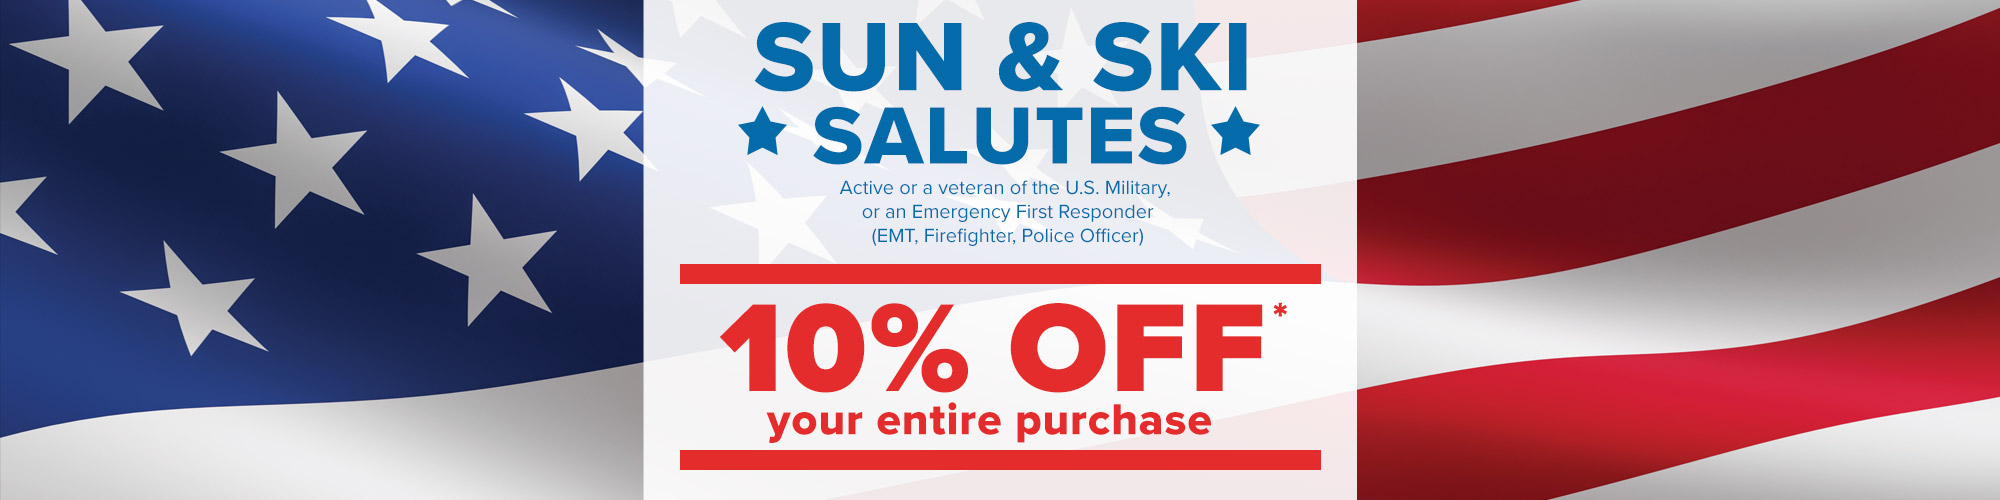 Sun & Ski Salutes - 20% off entire purchase. Limited time